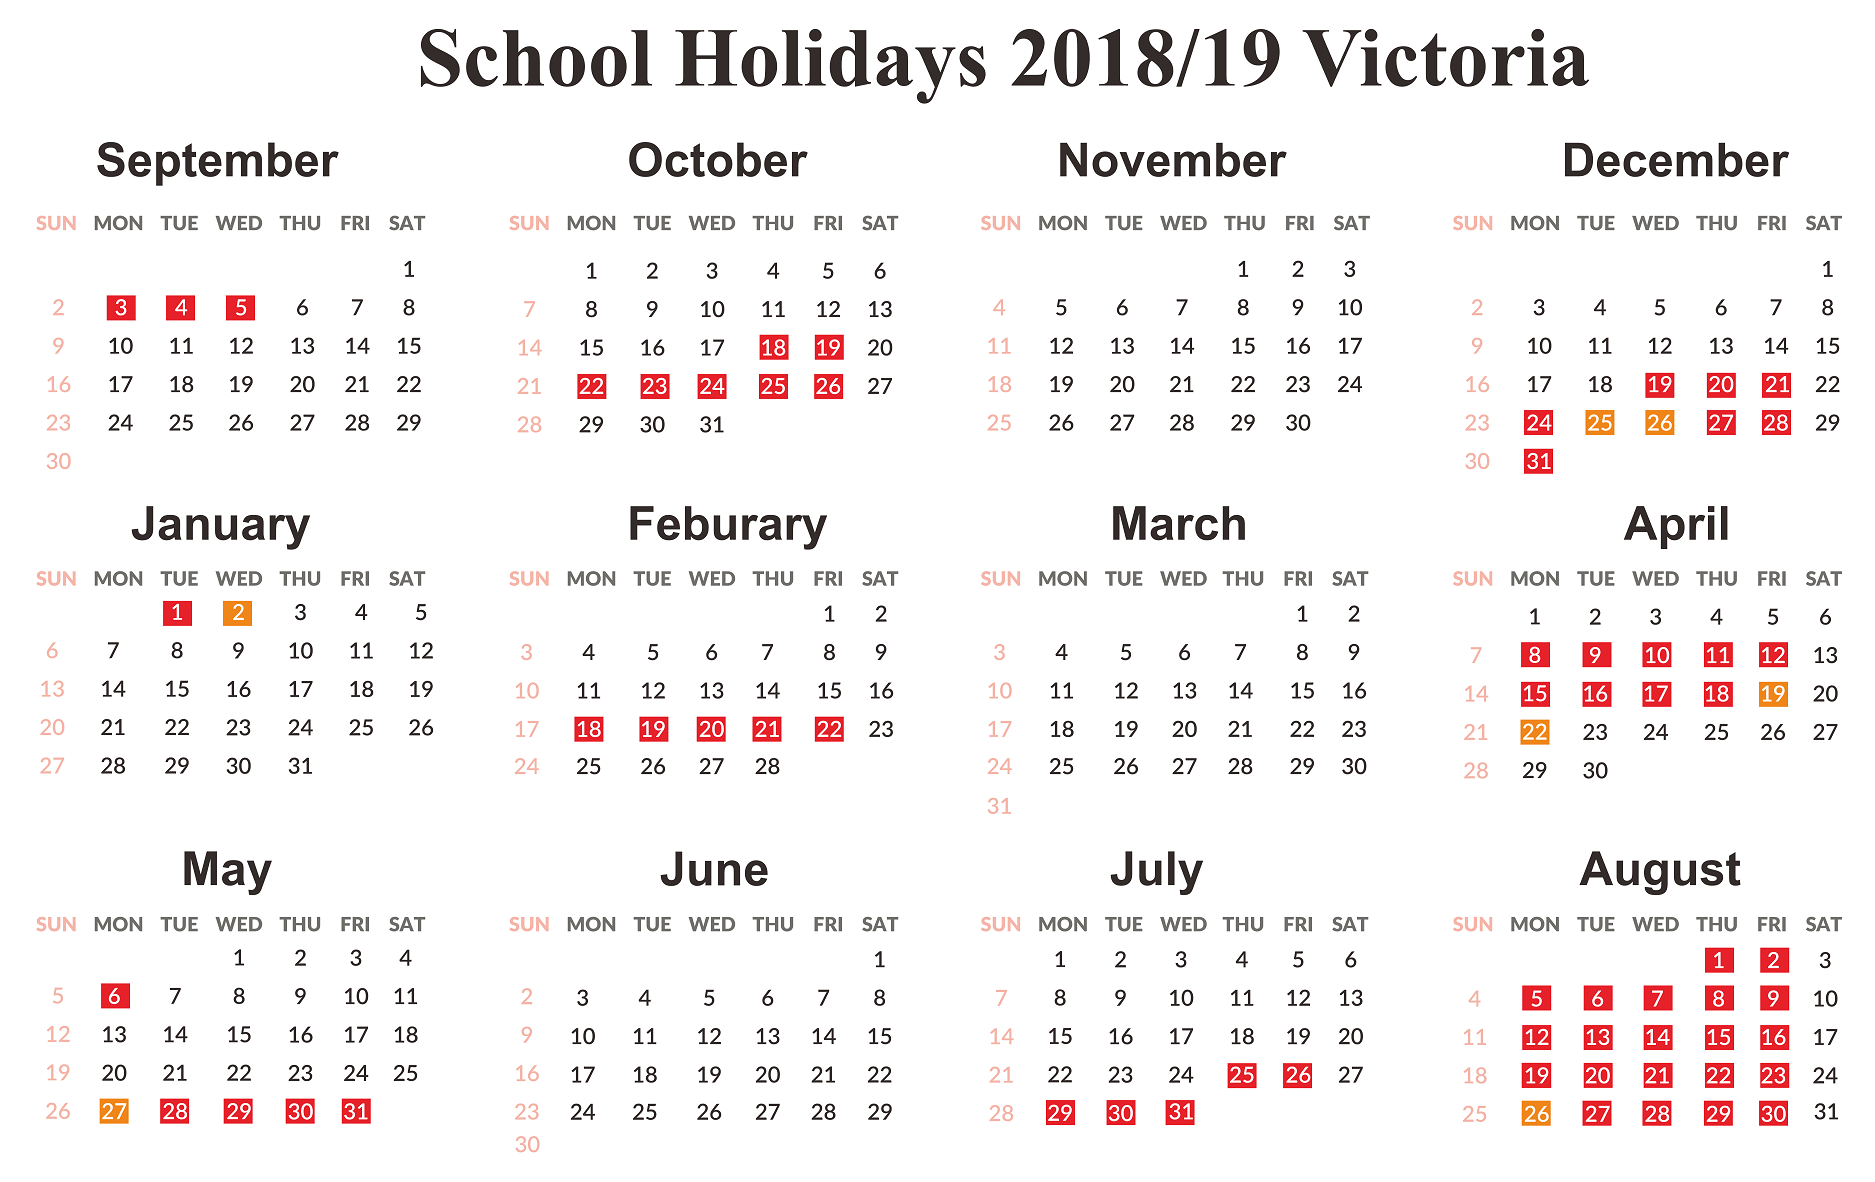 victoria school holidays dates 2019